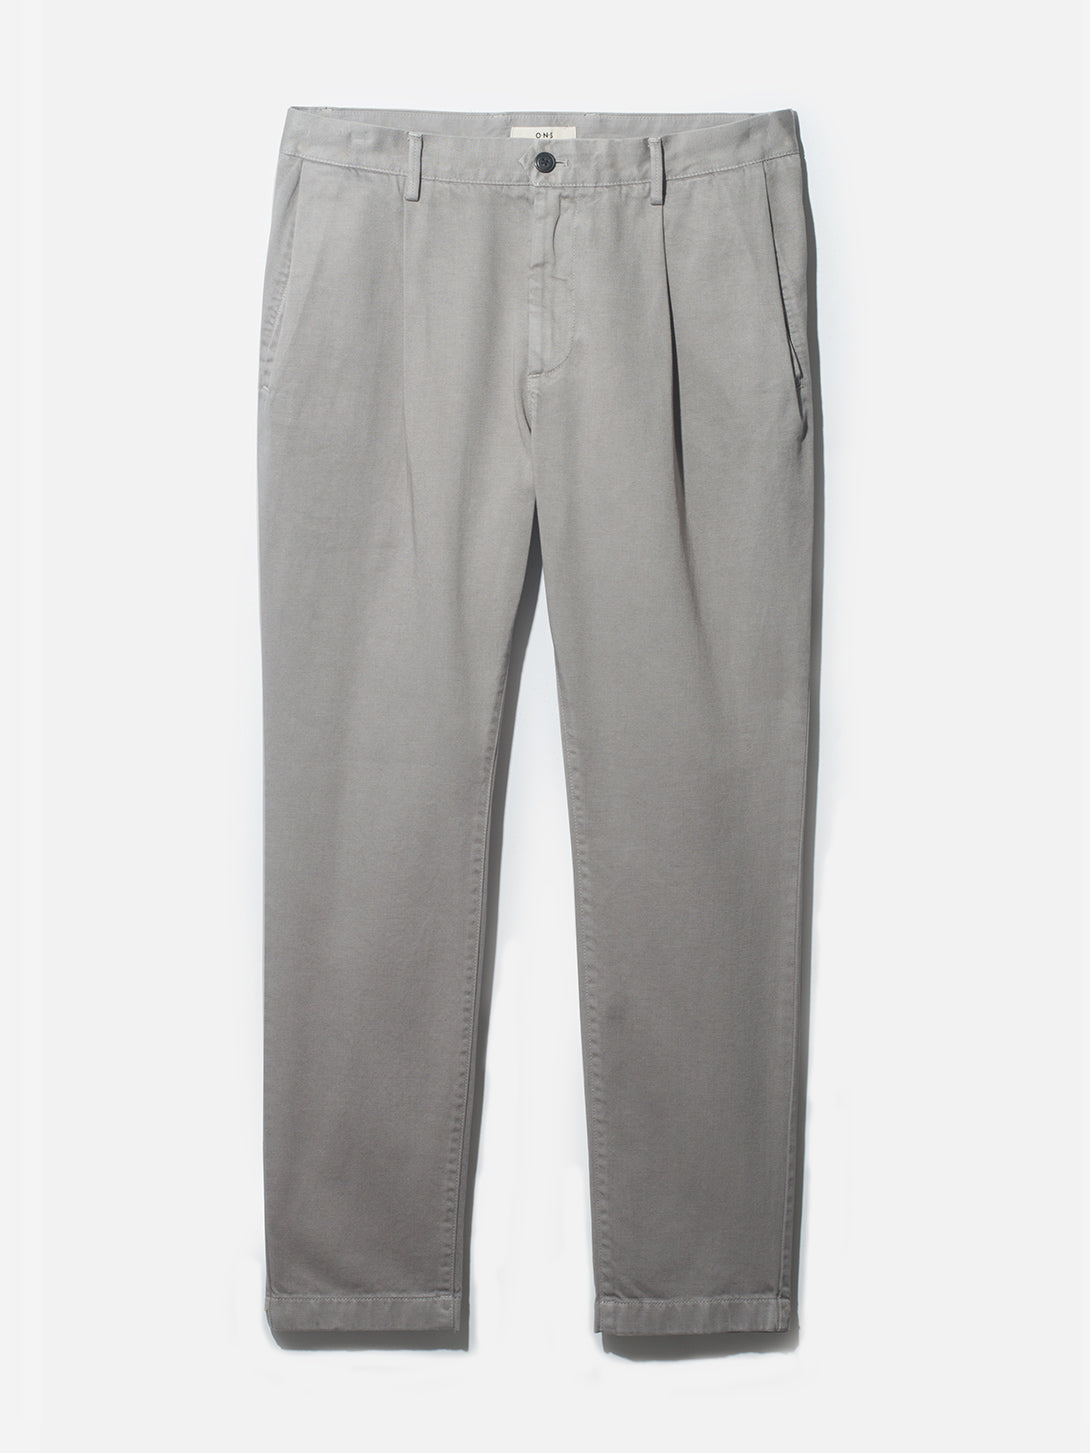 MODERN CHINO FROST GREY HERITAGE LINE